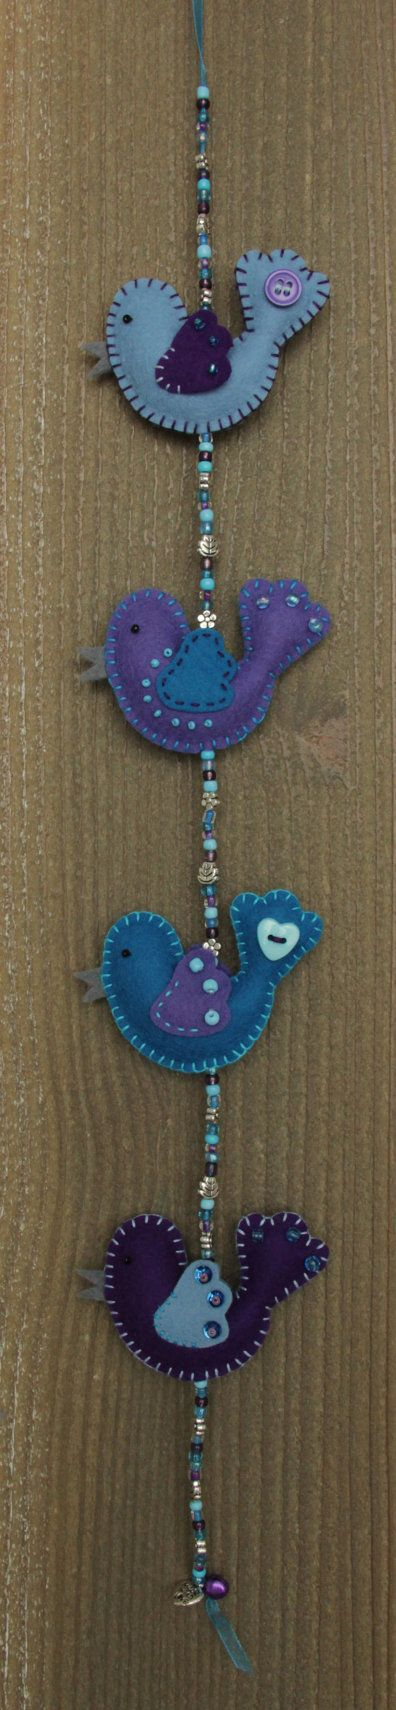 Felt bird decoration  MiniLuckybird garland door StudioSimone, €19.00